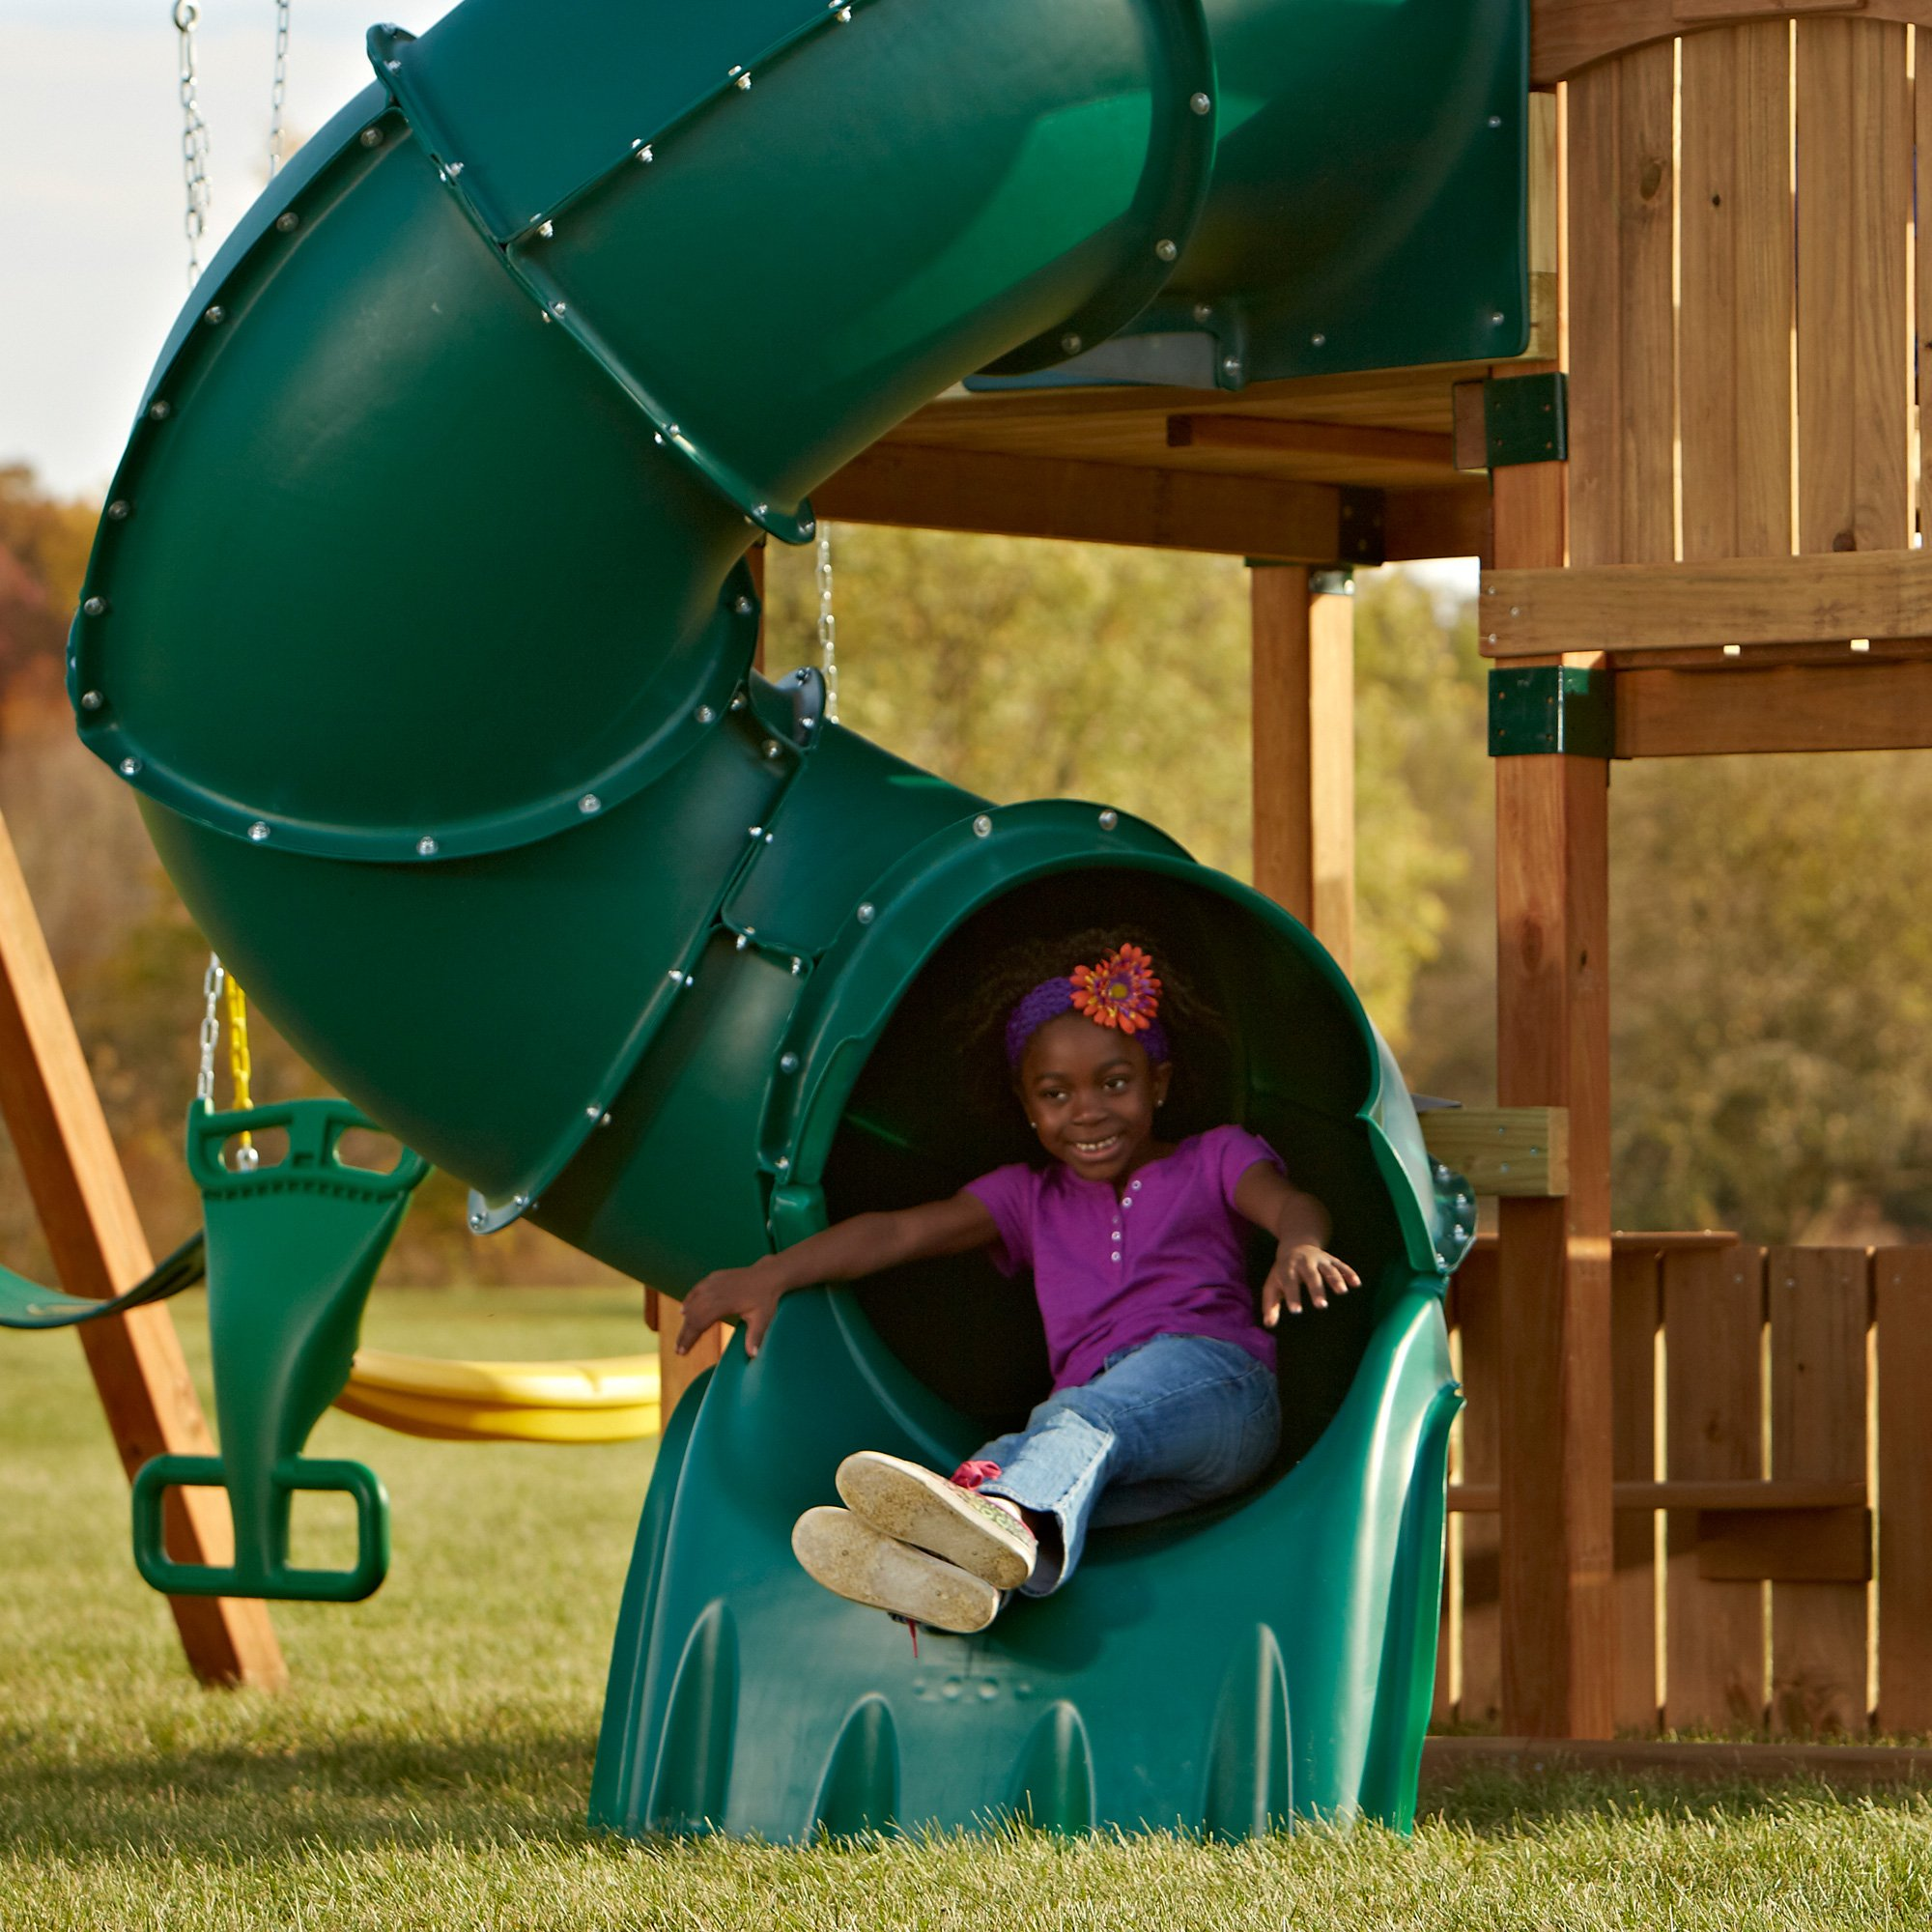 5 Ft Turbo Tube Slide Green by Swing-N-Slide (Image #3)